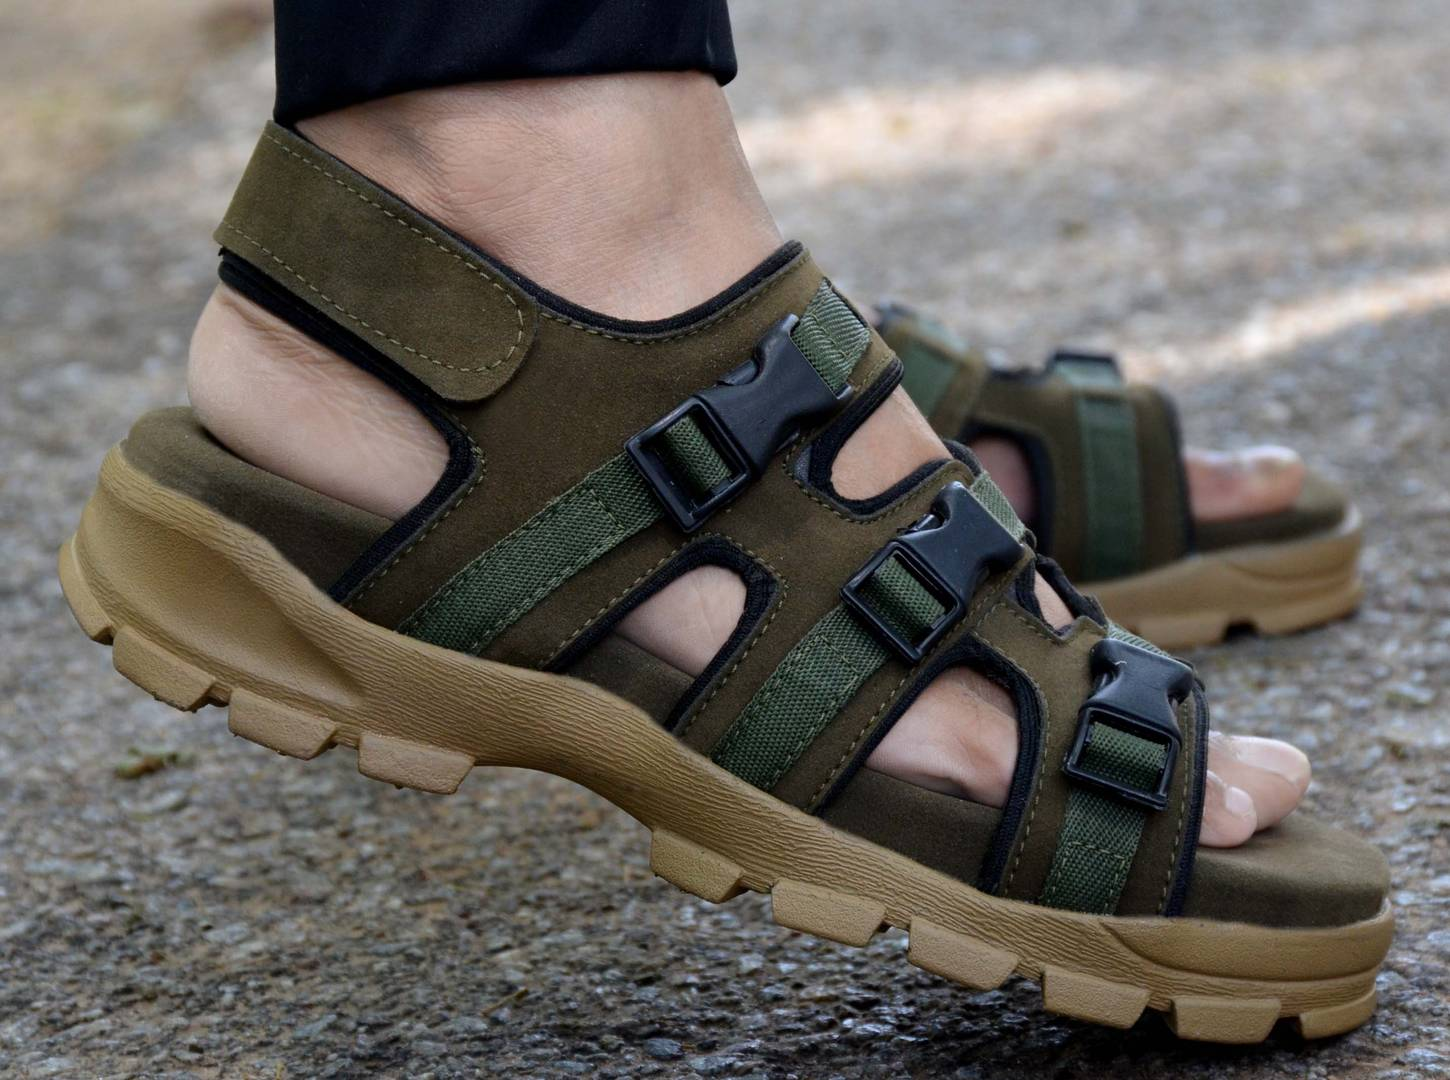 Olive Synthetic Self Design Comfort Sandals for Men's